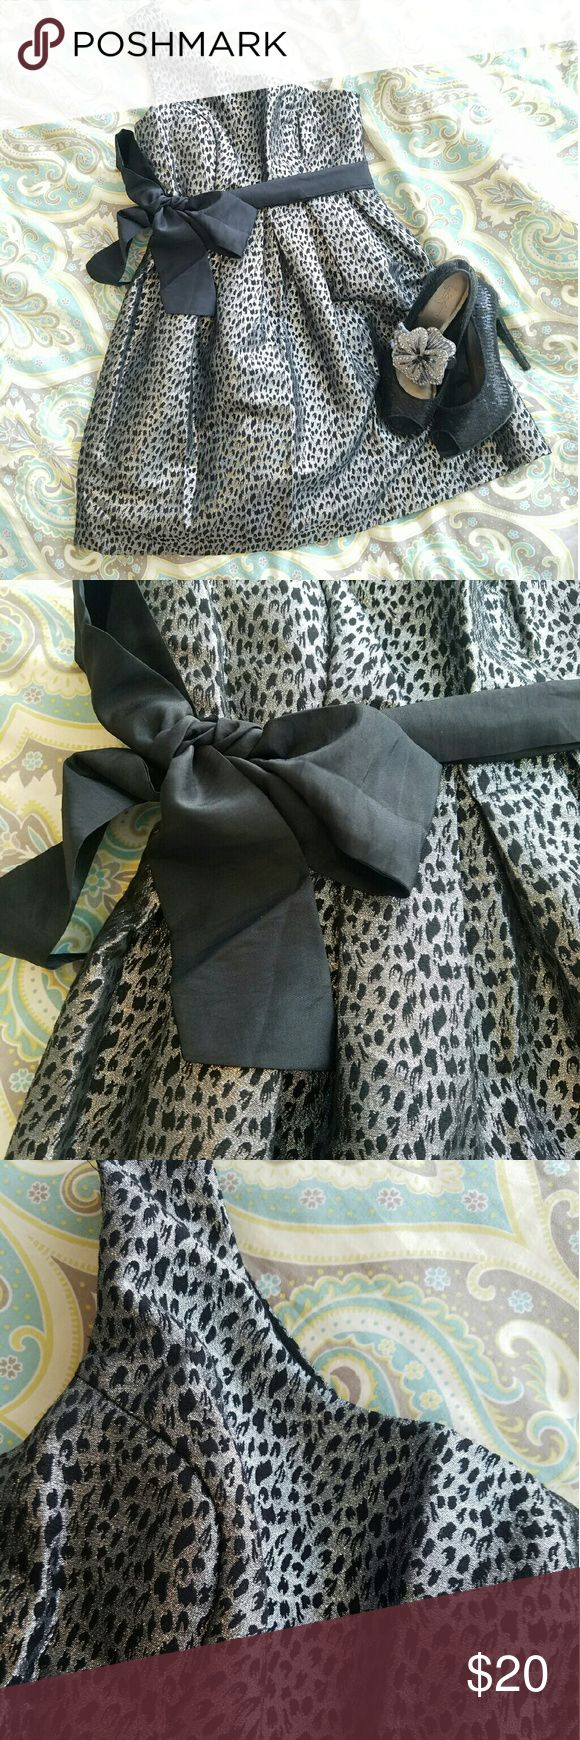 Forever 21 one shoulder poof skirt dress This fun silver with black animal print dress is great for homecoming, prom, or a new years eve party. Dress it up with so sparkly shoes. The bow can go on the side, front or back. However you want. Forever 21 Dresses Prom